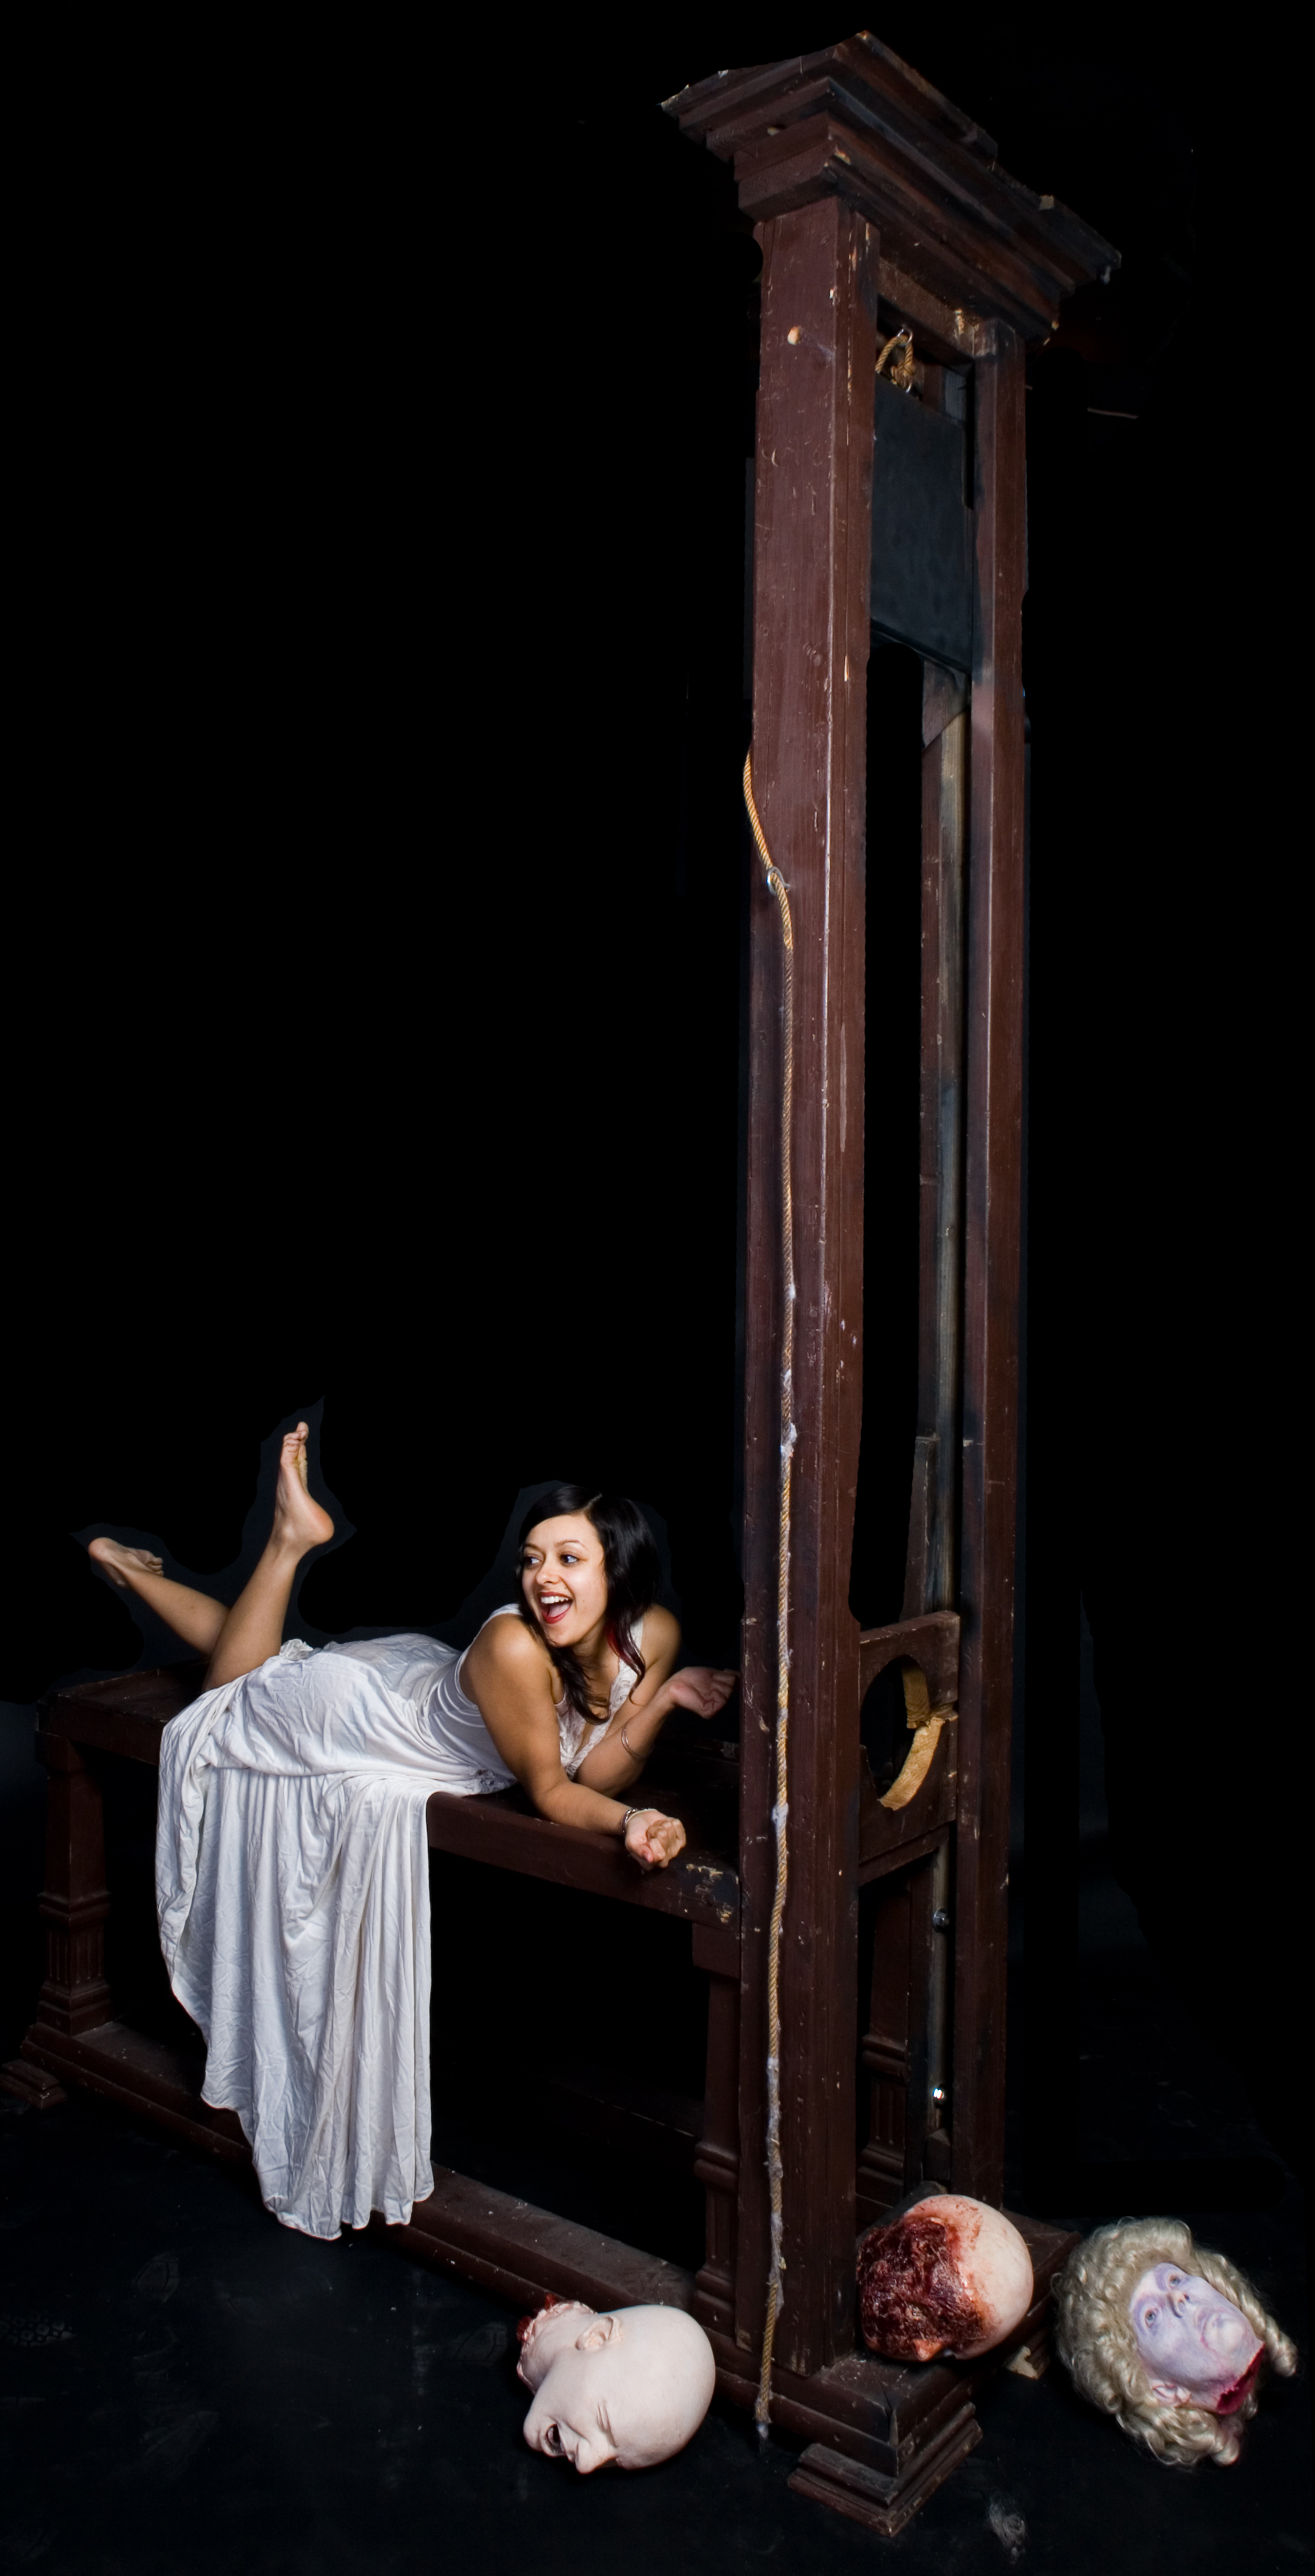 Girl On Guillotine http://www.bjwinslow.com/gallery/dapper-cadaver-girls-radhika/12_ft_guillotine_33